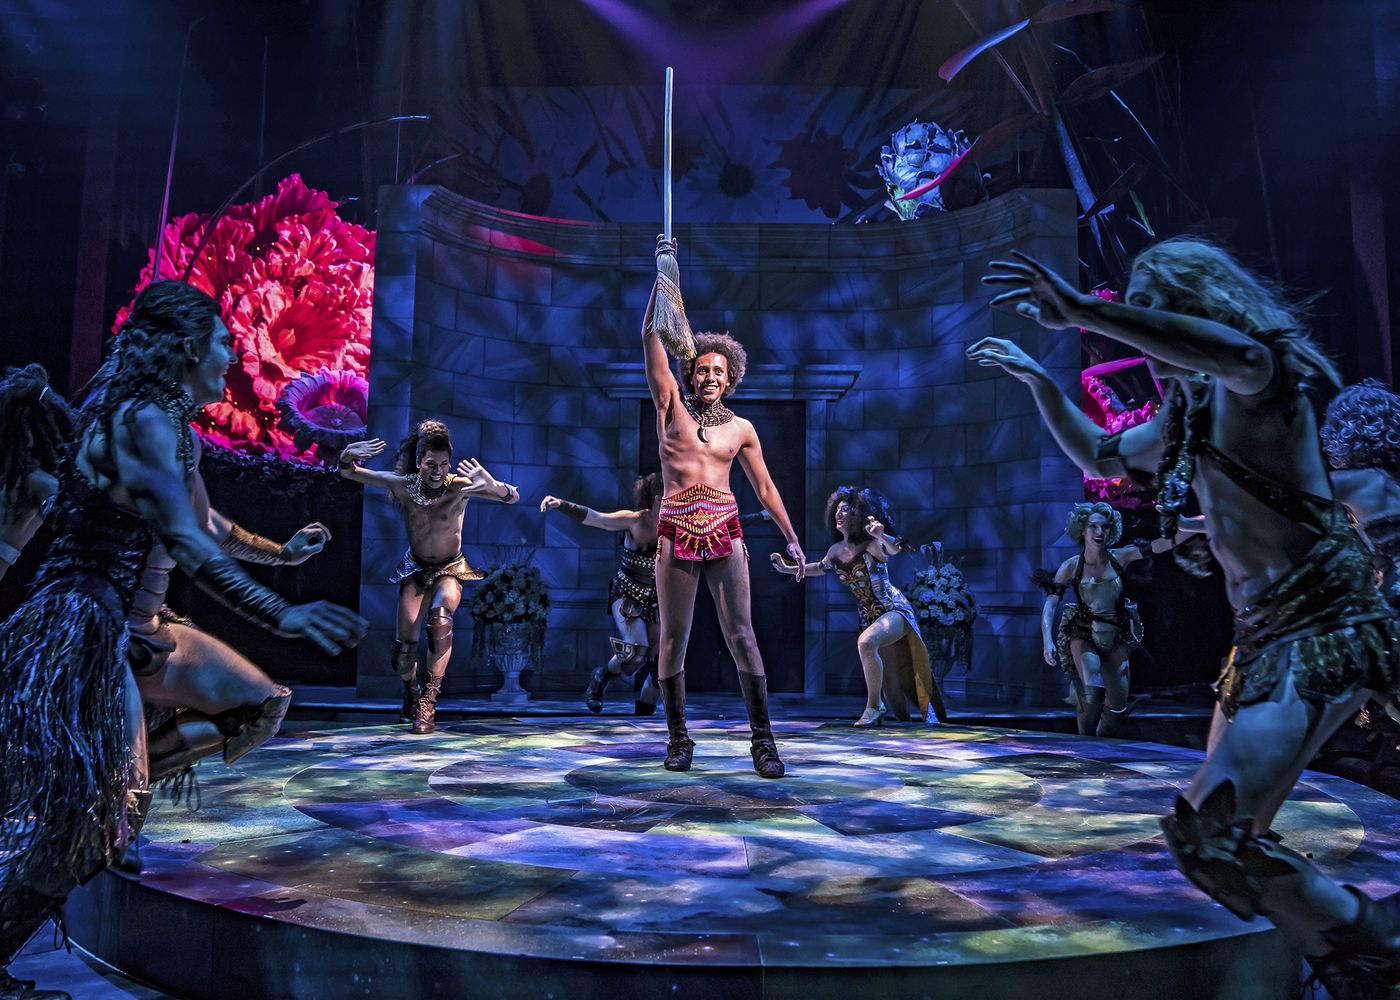 Midsummer Night's Dream' review: Spectacle overpowers story